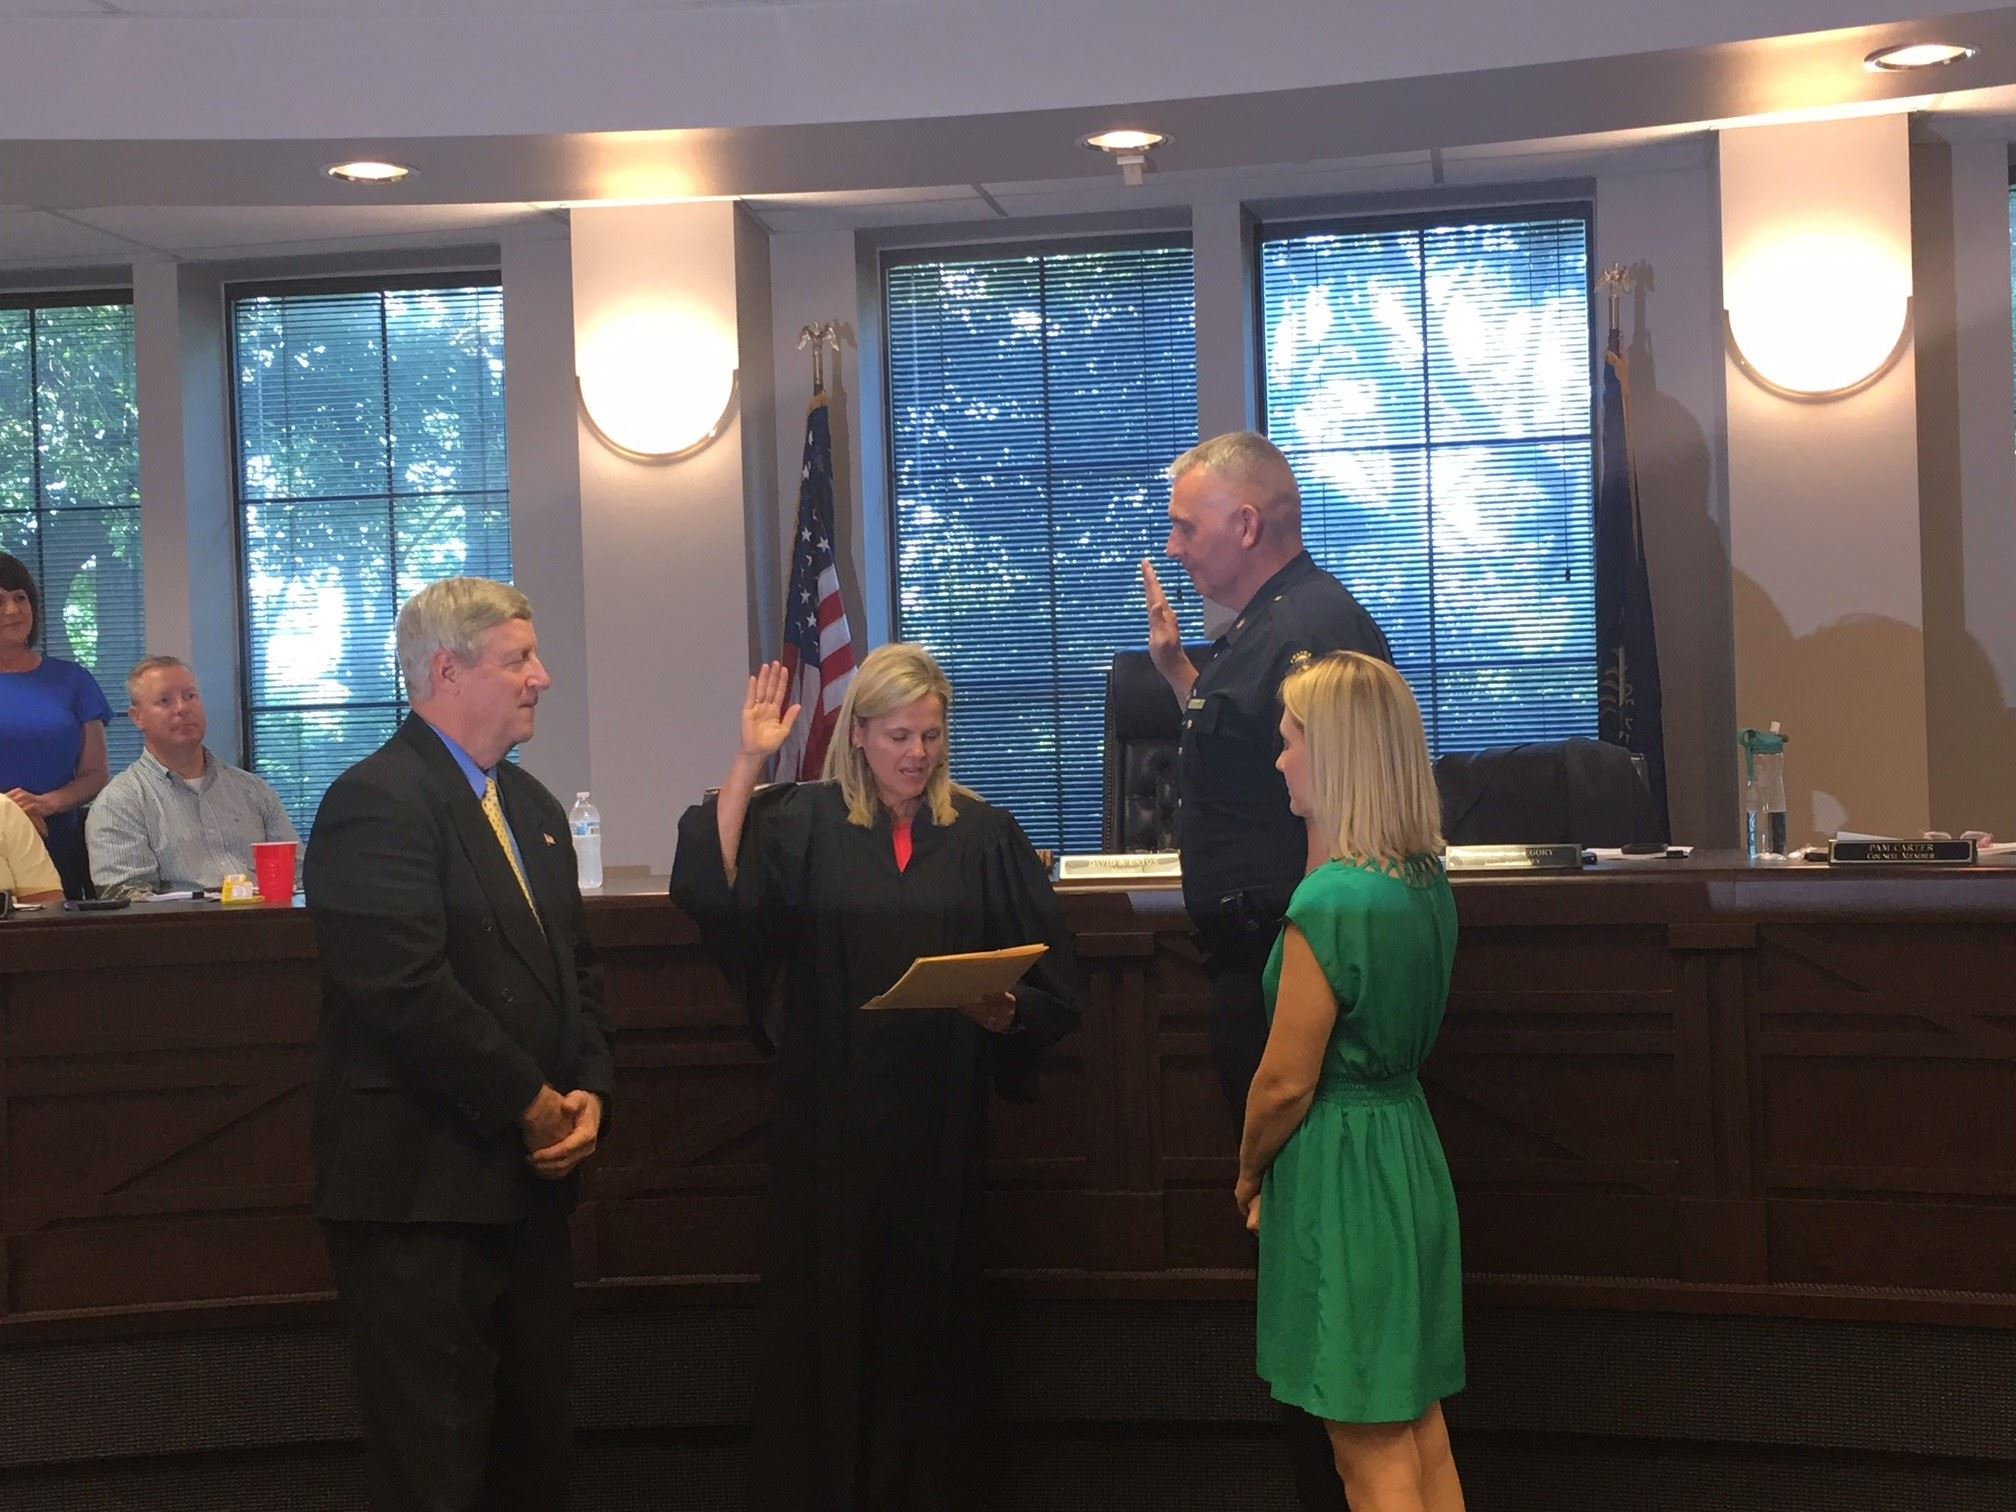 Swearing in of Ch. Gentry